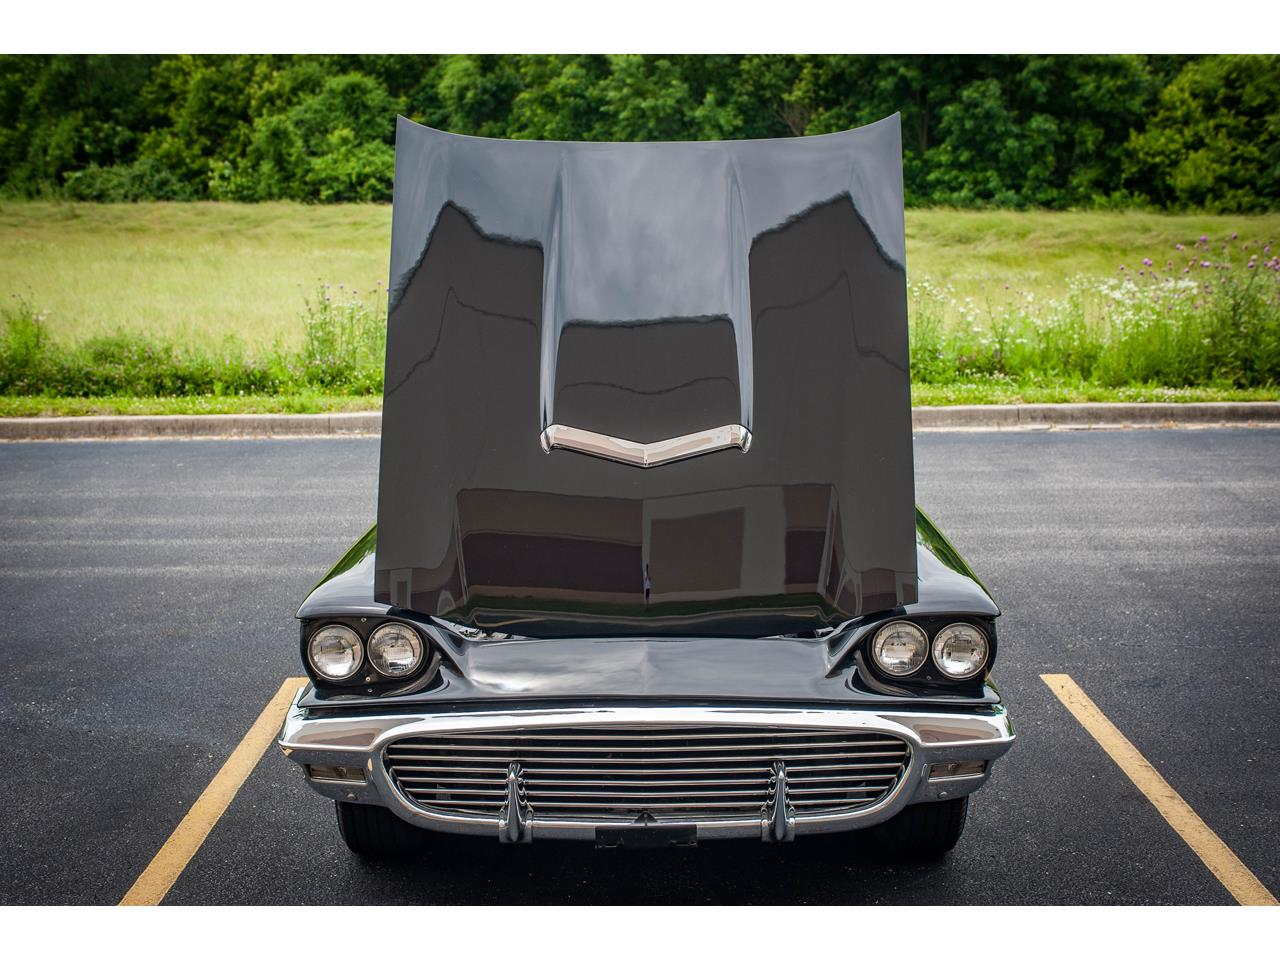 Large Picture of Classic 1960 Ford Thunderbird located in O'Fallon Illinois - $40,500.00 Offered by Gateway Classic Cars - St. Louis - QB9W